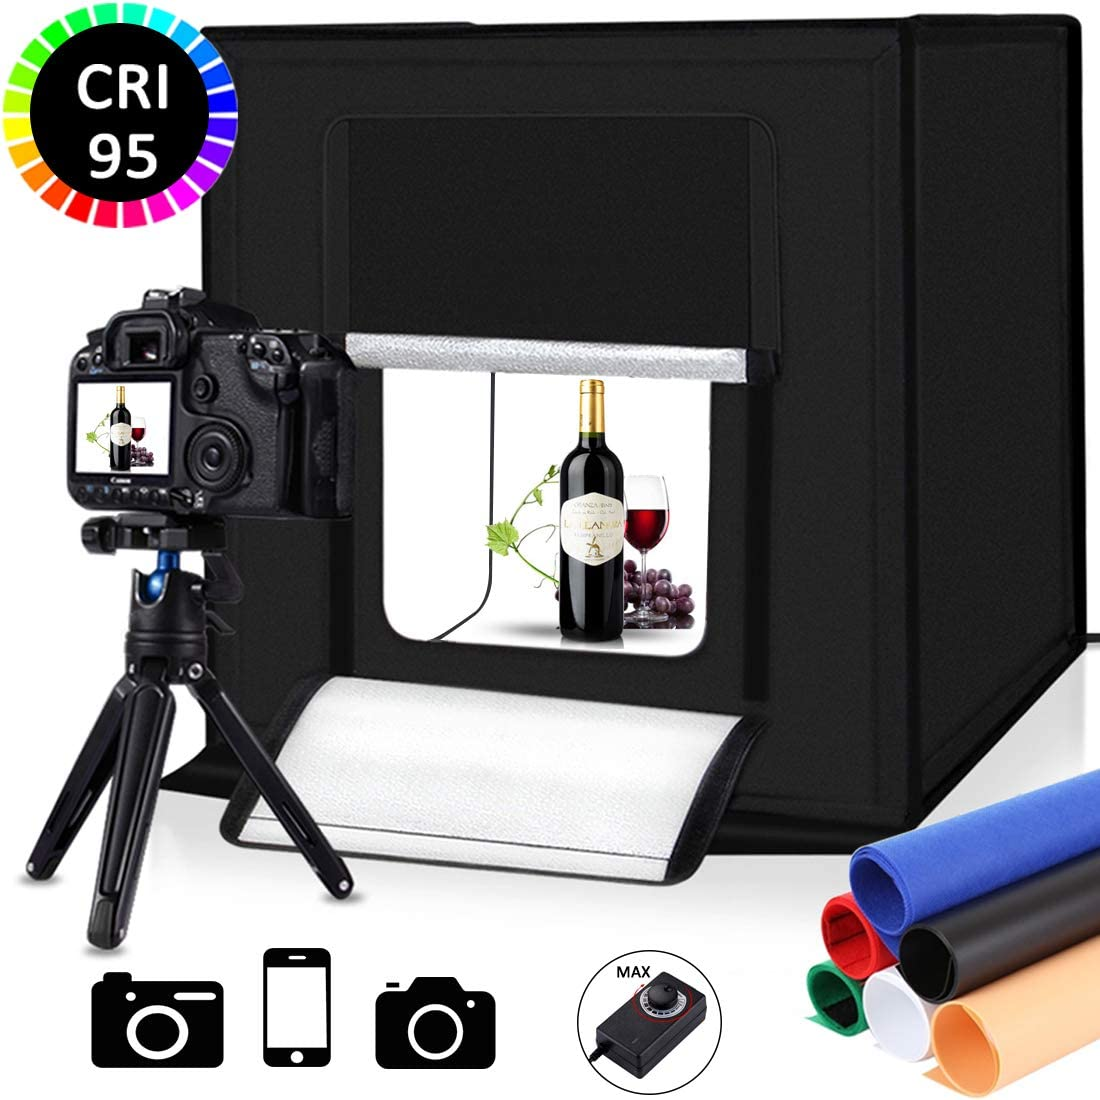 Photo Studio Light Box Kit Portable Photo Shooting Tent with White Light Warm Light and 6 Color Background 12inch x 12inch Photography Adjustable Light Box with 80pcs SMD LED Beads